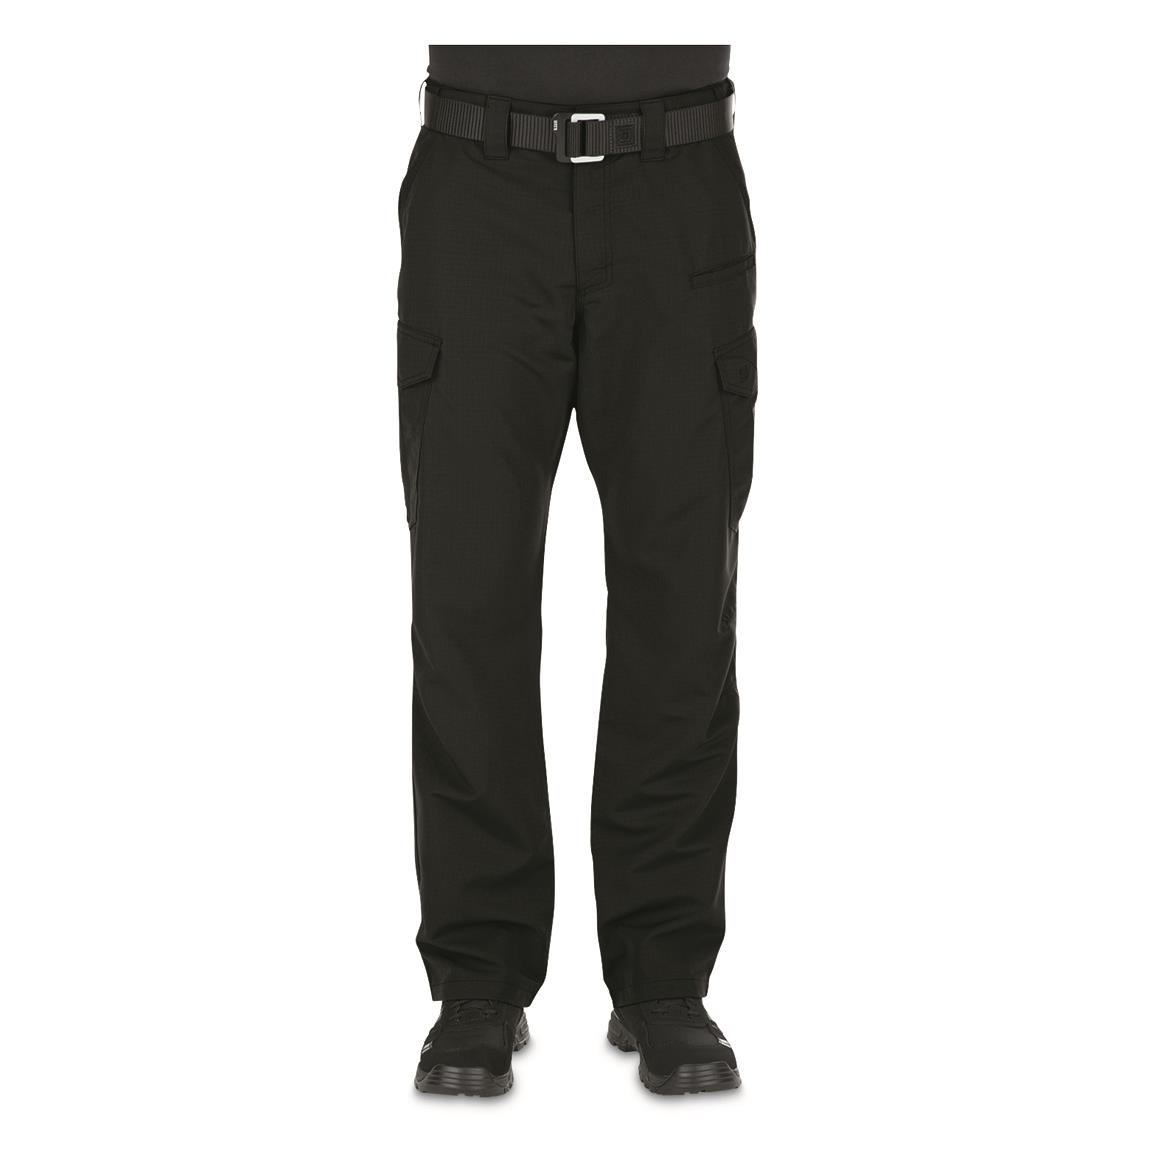 5.11 Tactical Fast-Tac Men's Cargo Pants, Black